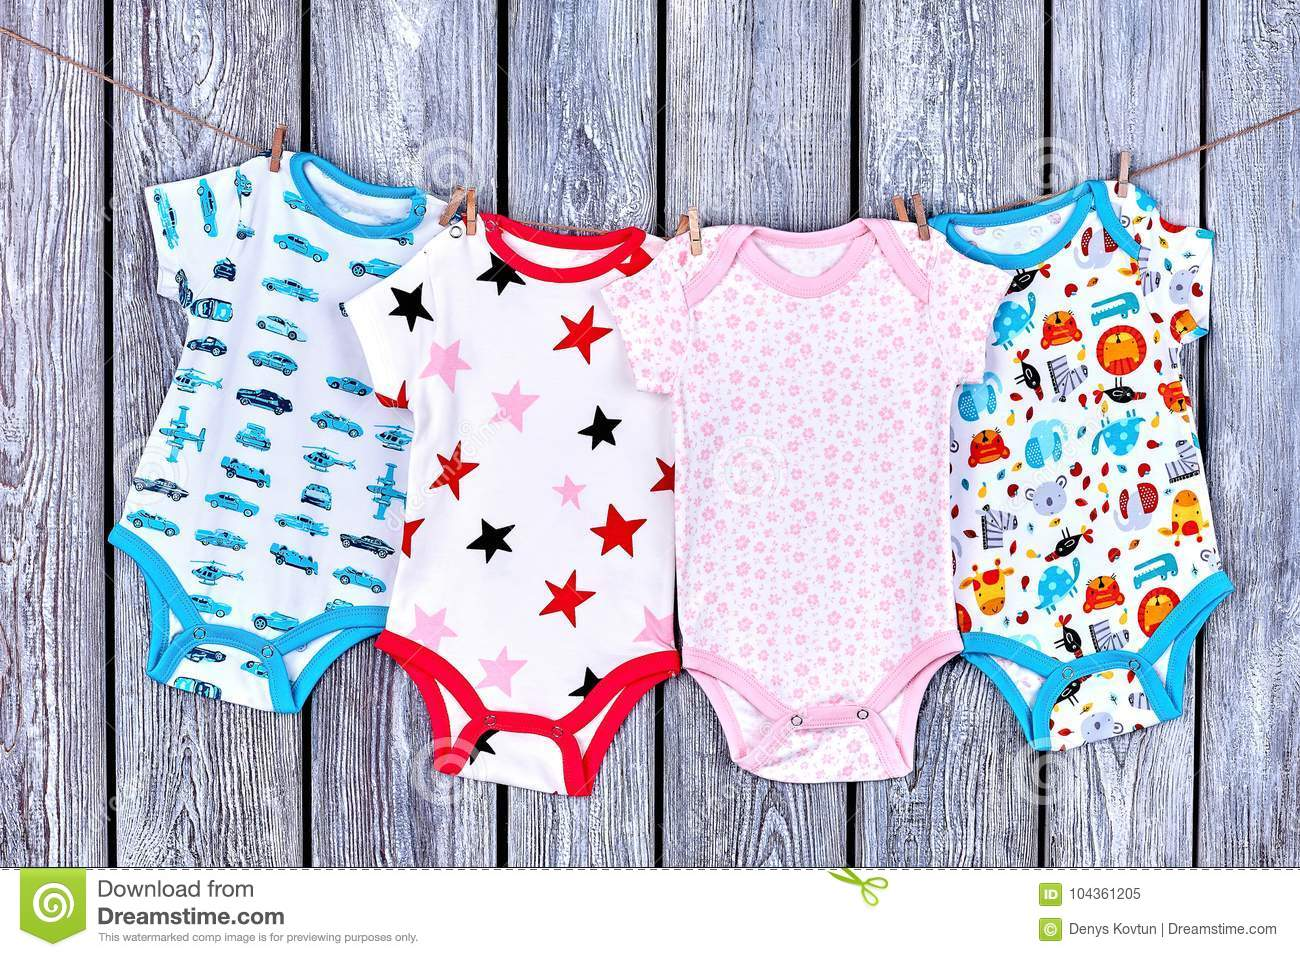 65f4101c7 Infants Clothes Hanging On Rope. Stock Image - Image of dainty ...